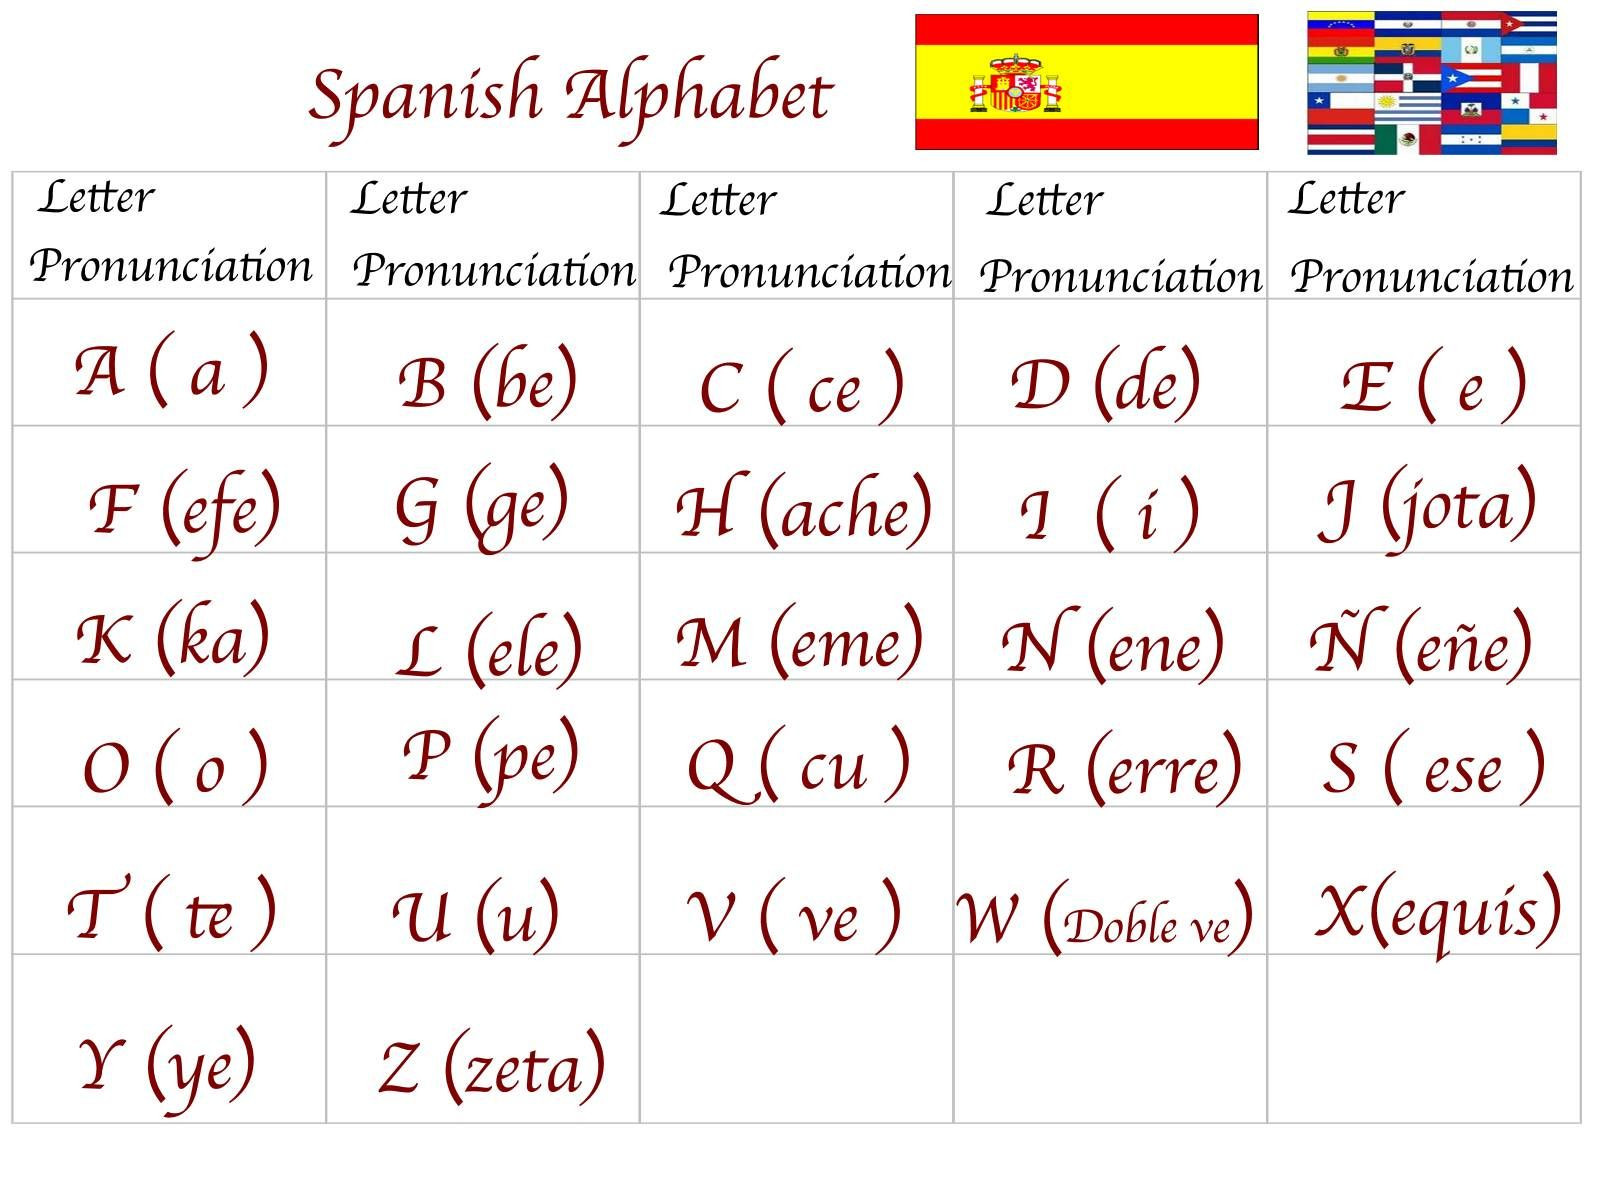 Spanish Alphabet Chart Printable 100 Useful Spanish Phrases